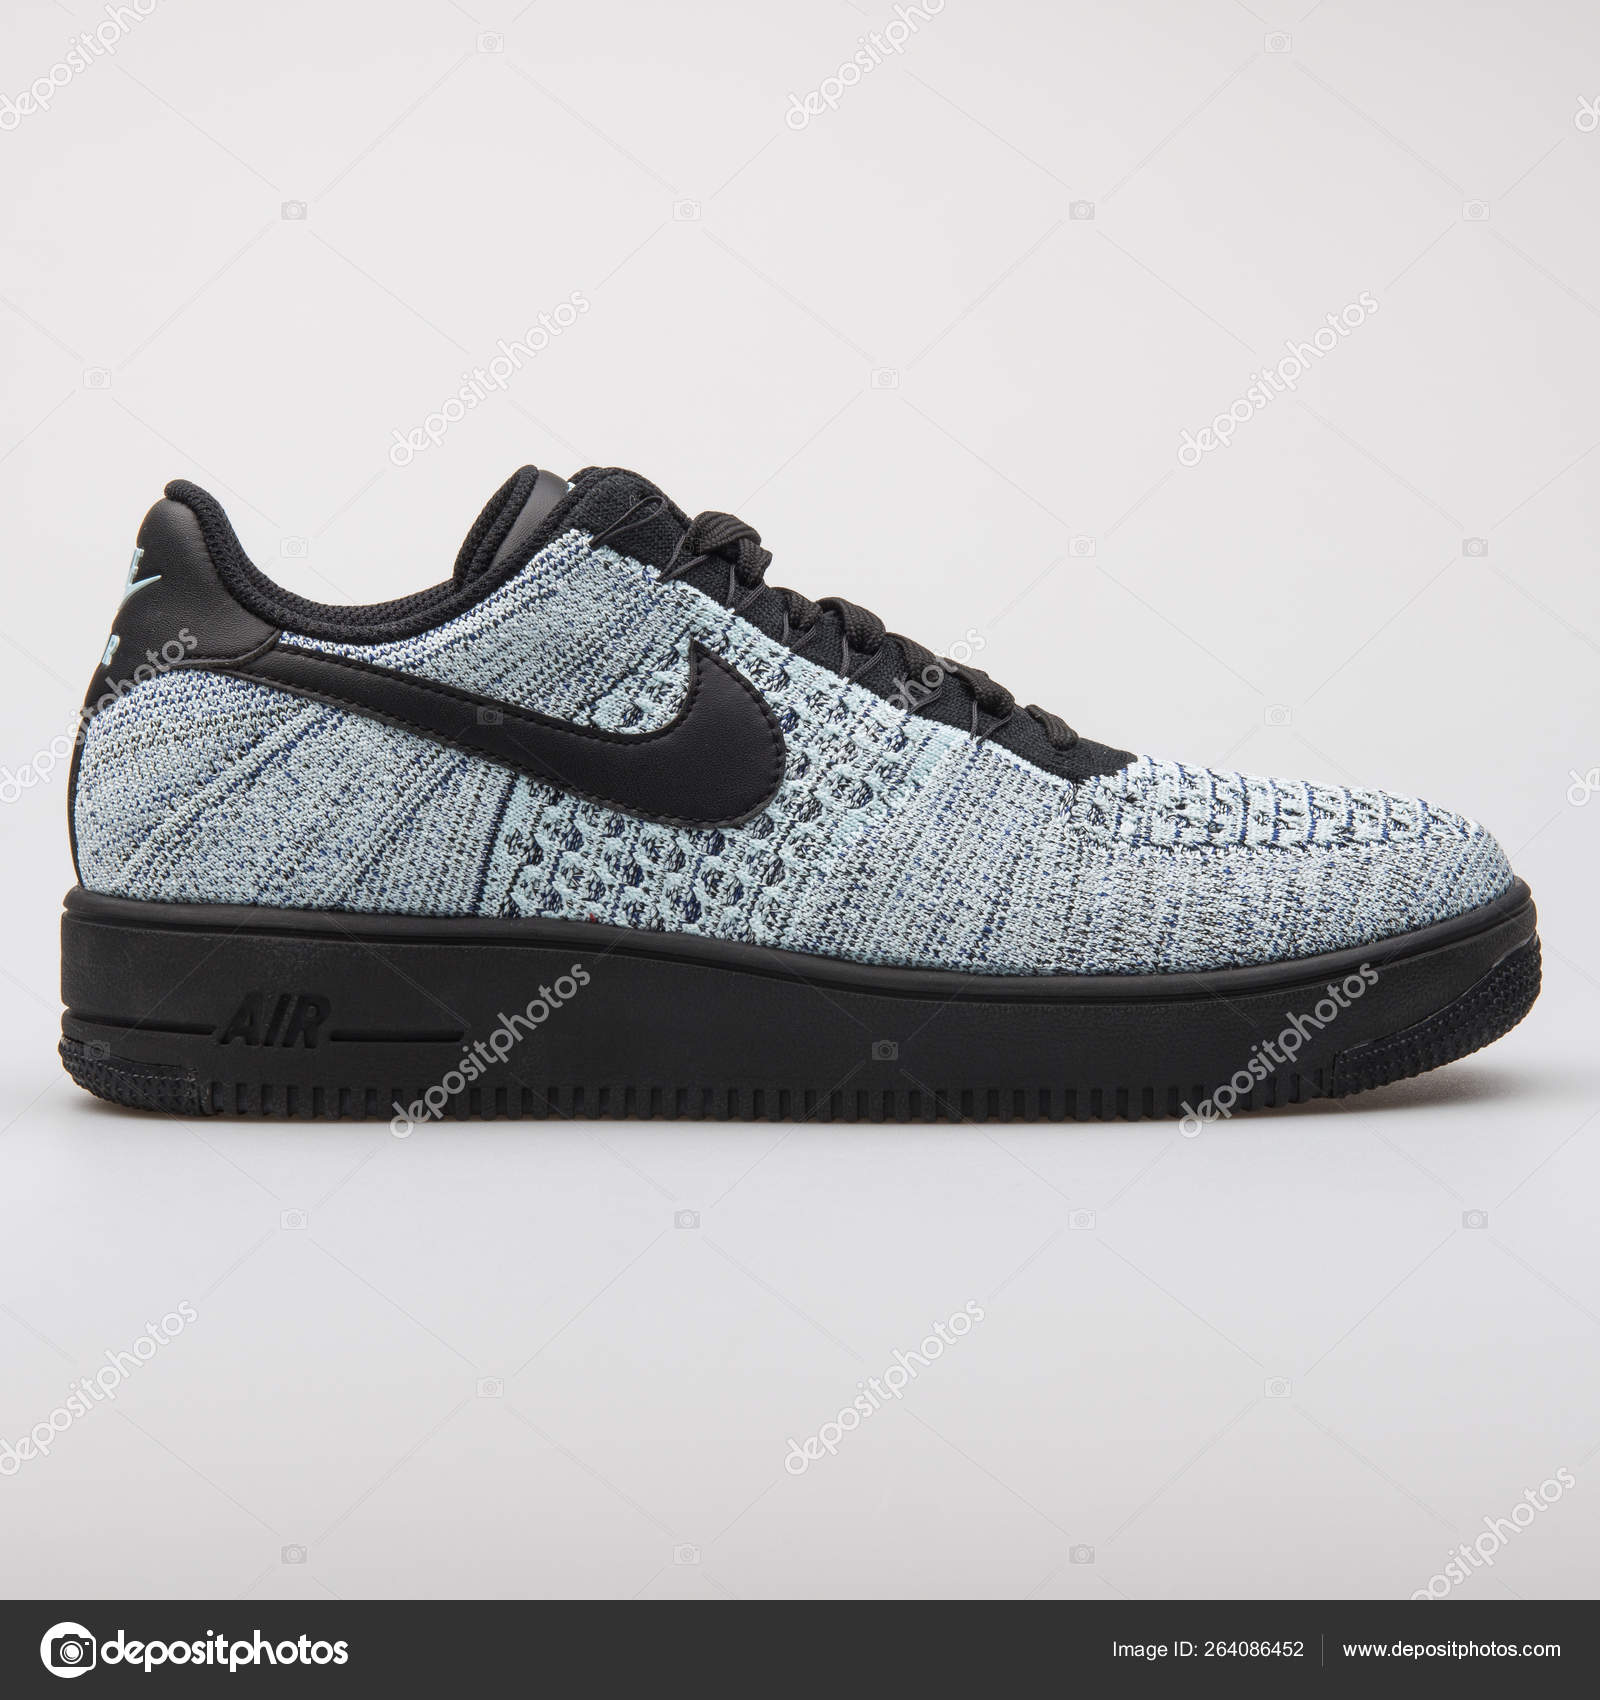 2a4d3957 Nike Air Force 1 Ultra Flyknit Low grey and black sneaker — Stock Photo